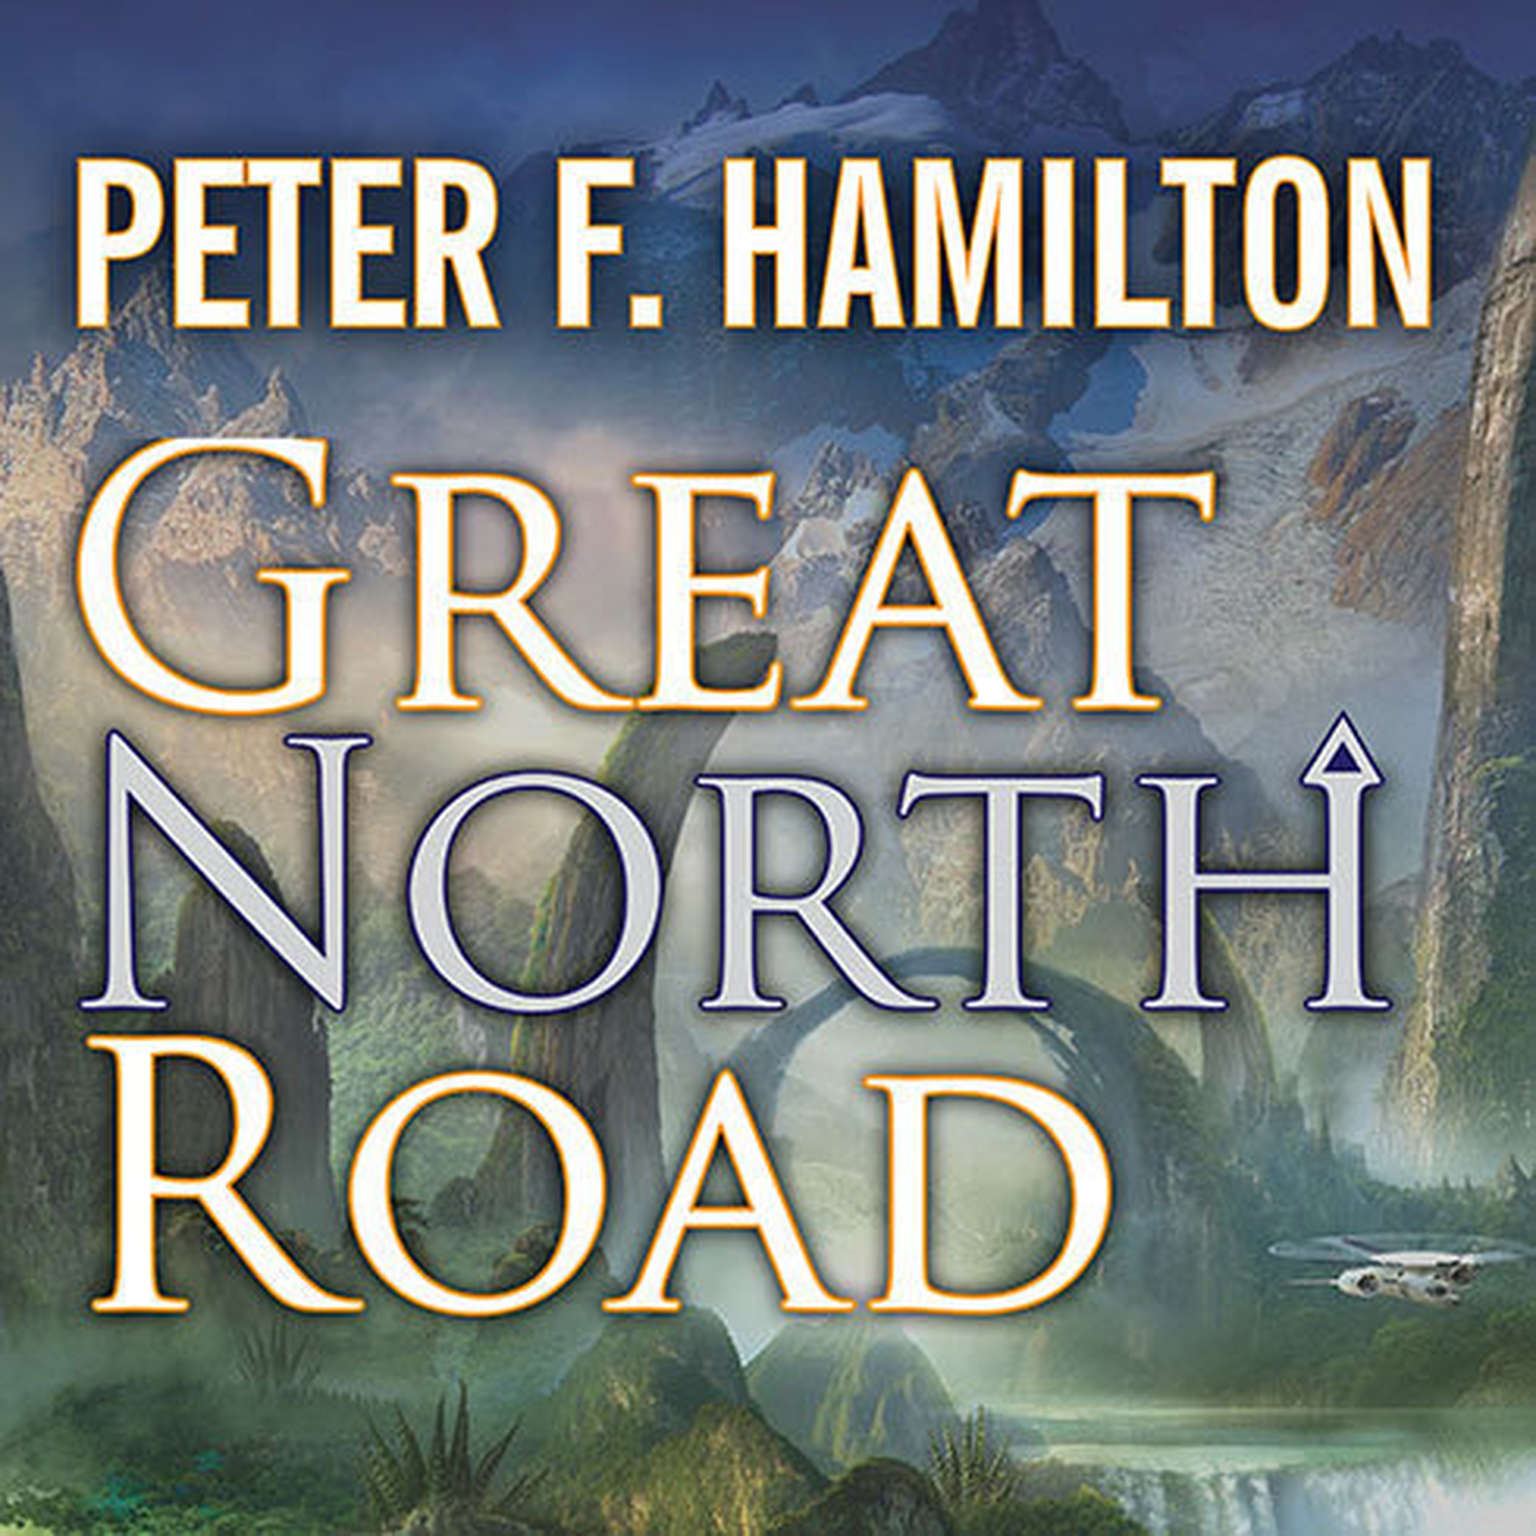 Printable Great North Road Audiobook Cover Art